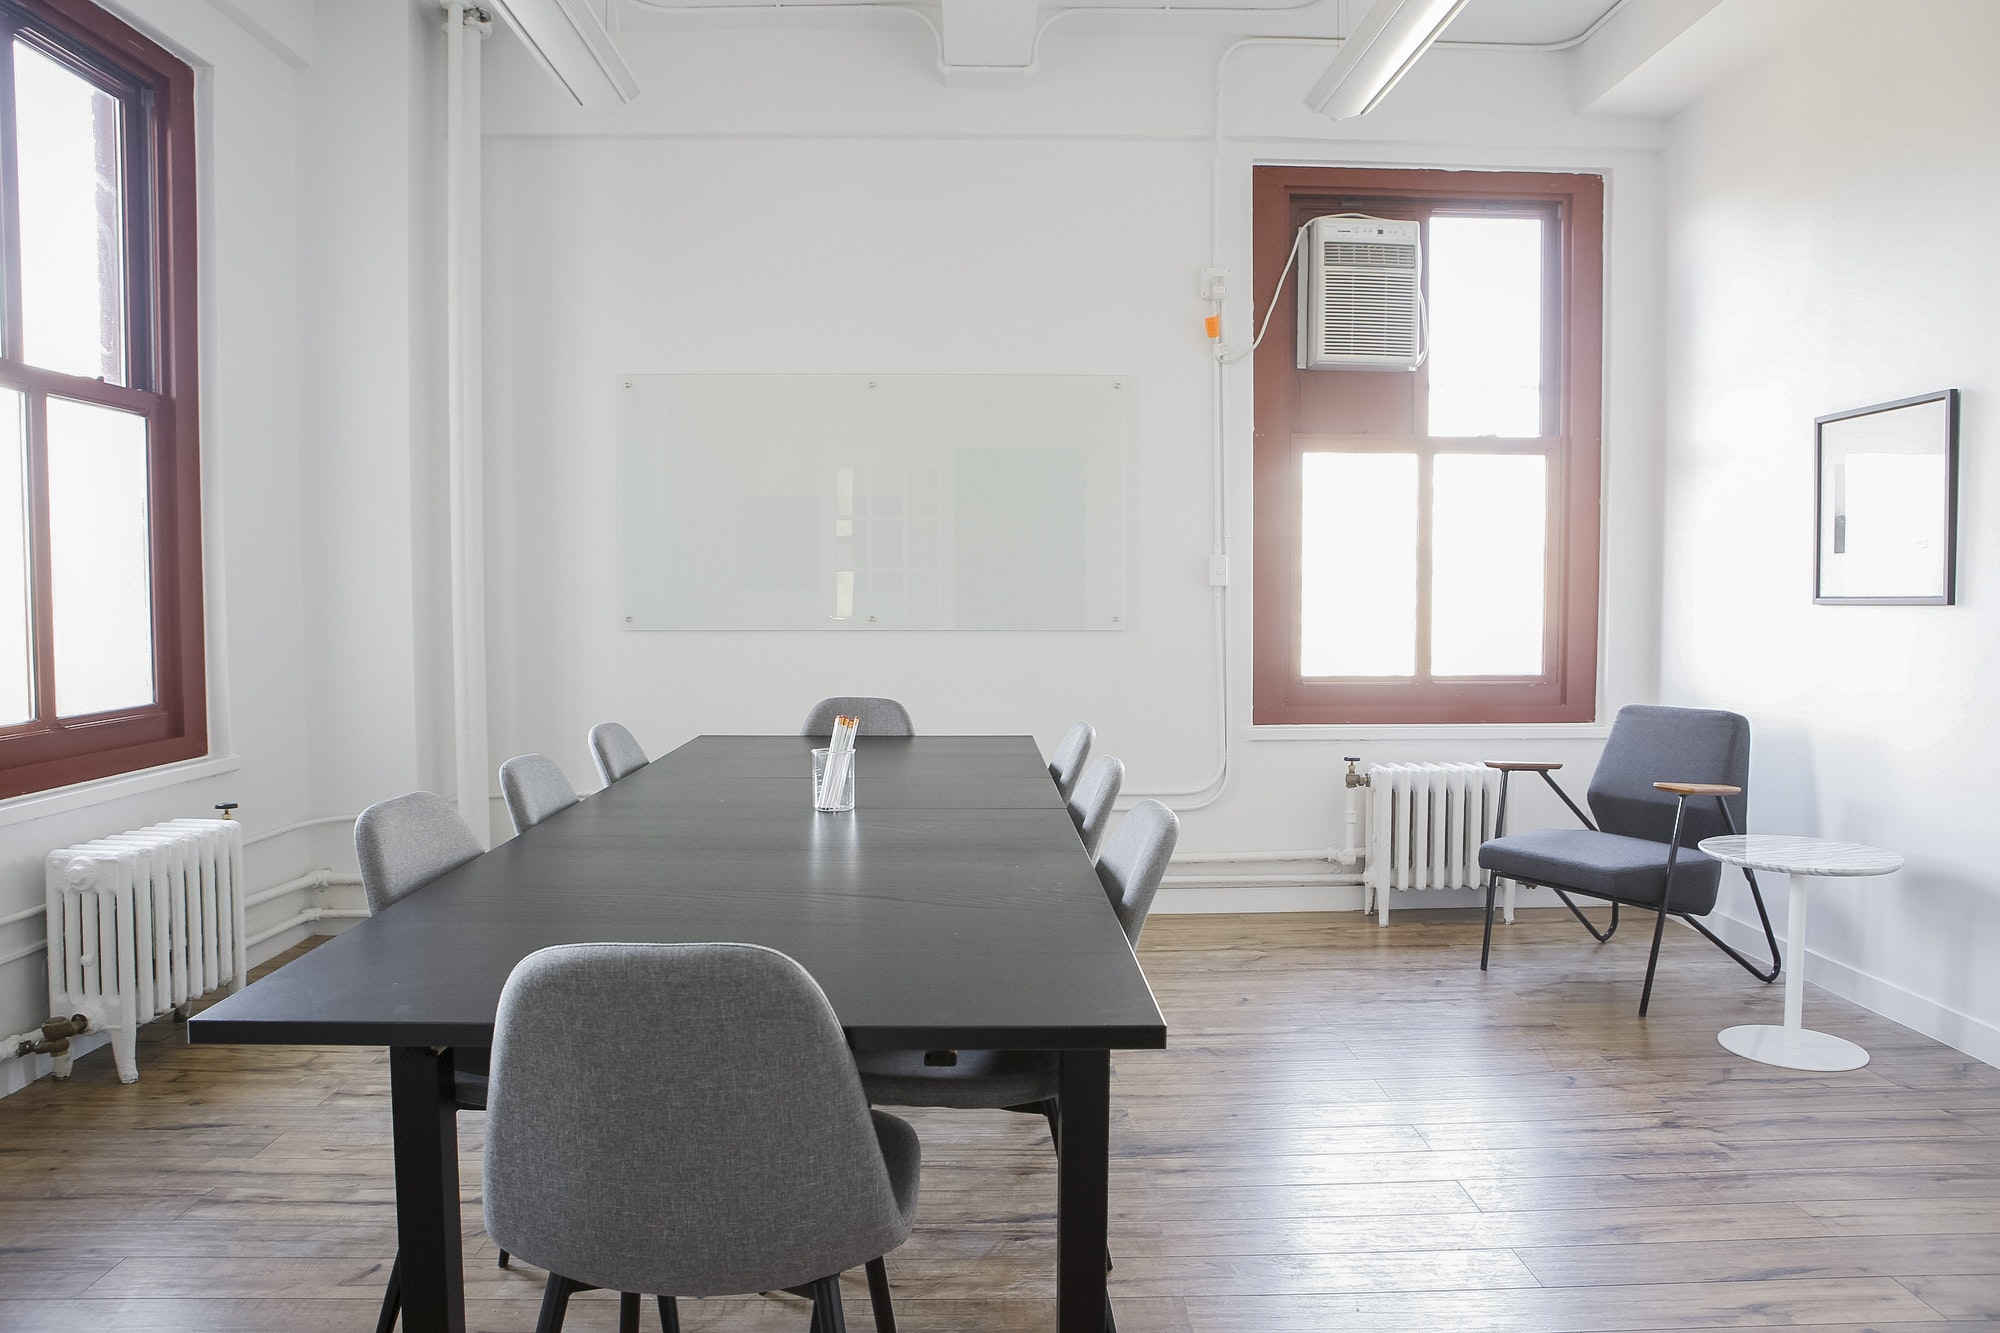 collaboration space at 853 Broadway ,New York City